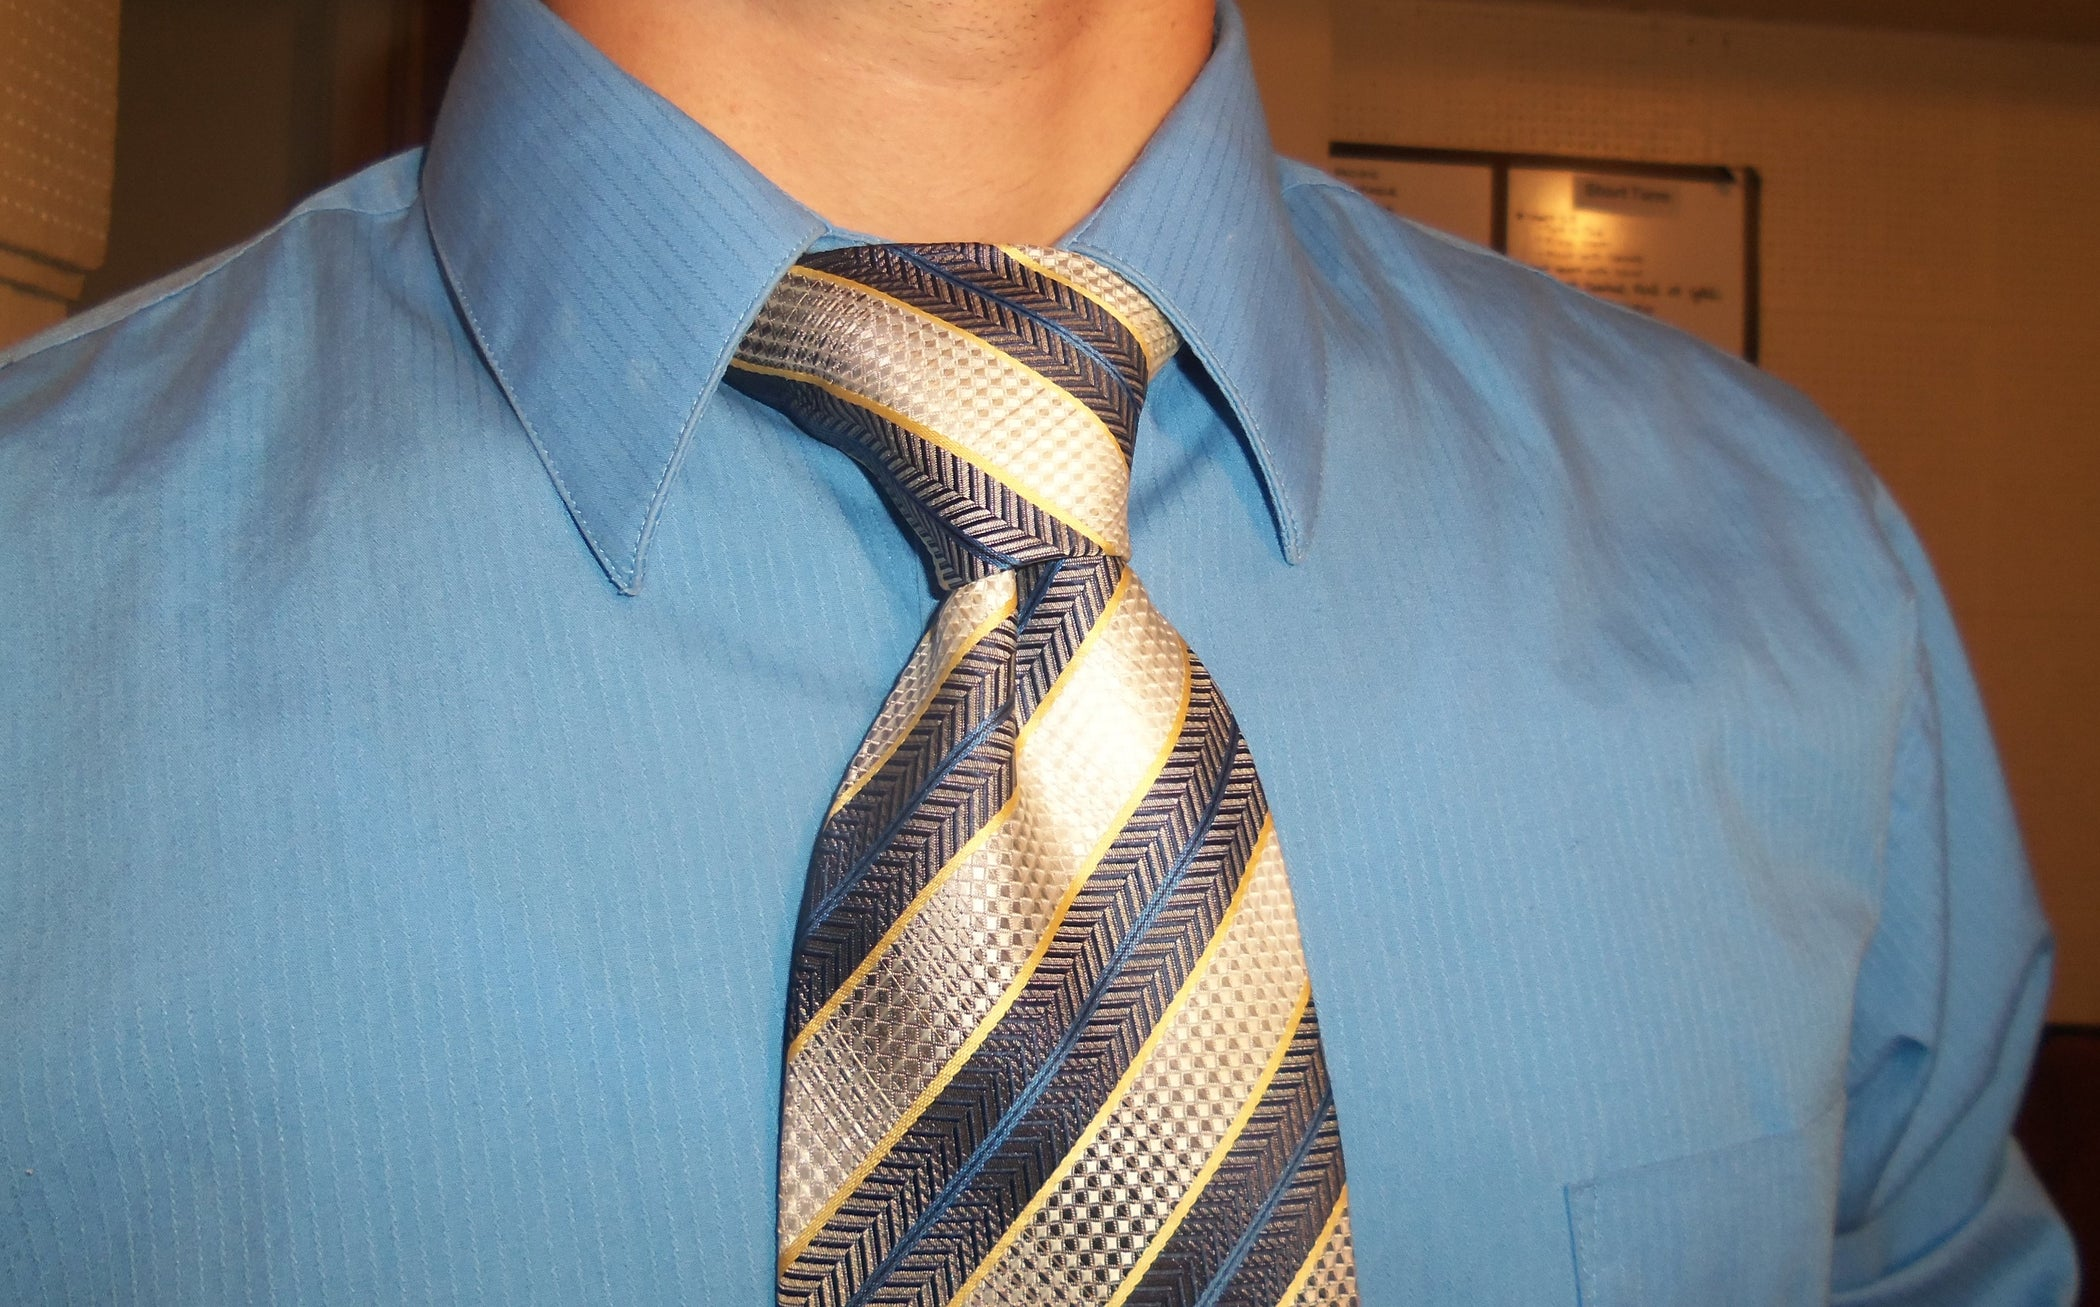 How To Tie A Windsor Knot 9 Steps With Pictures Tying